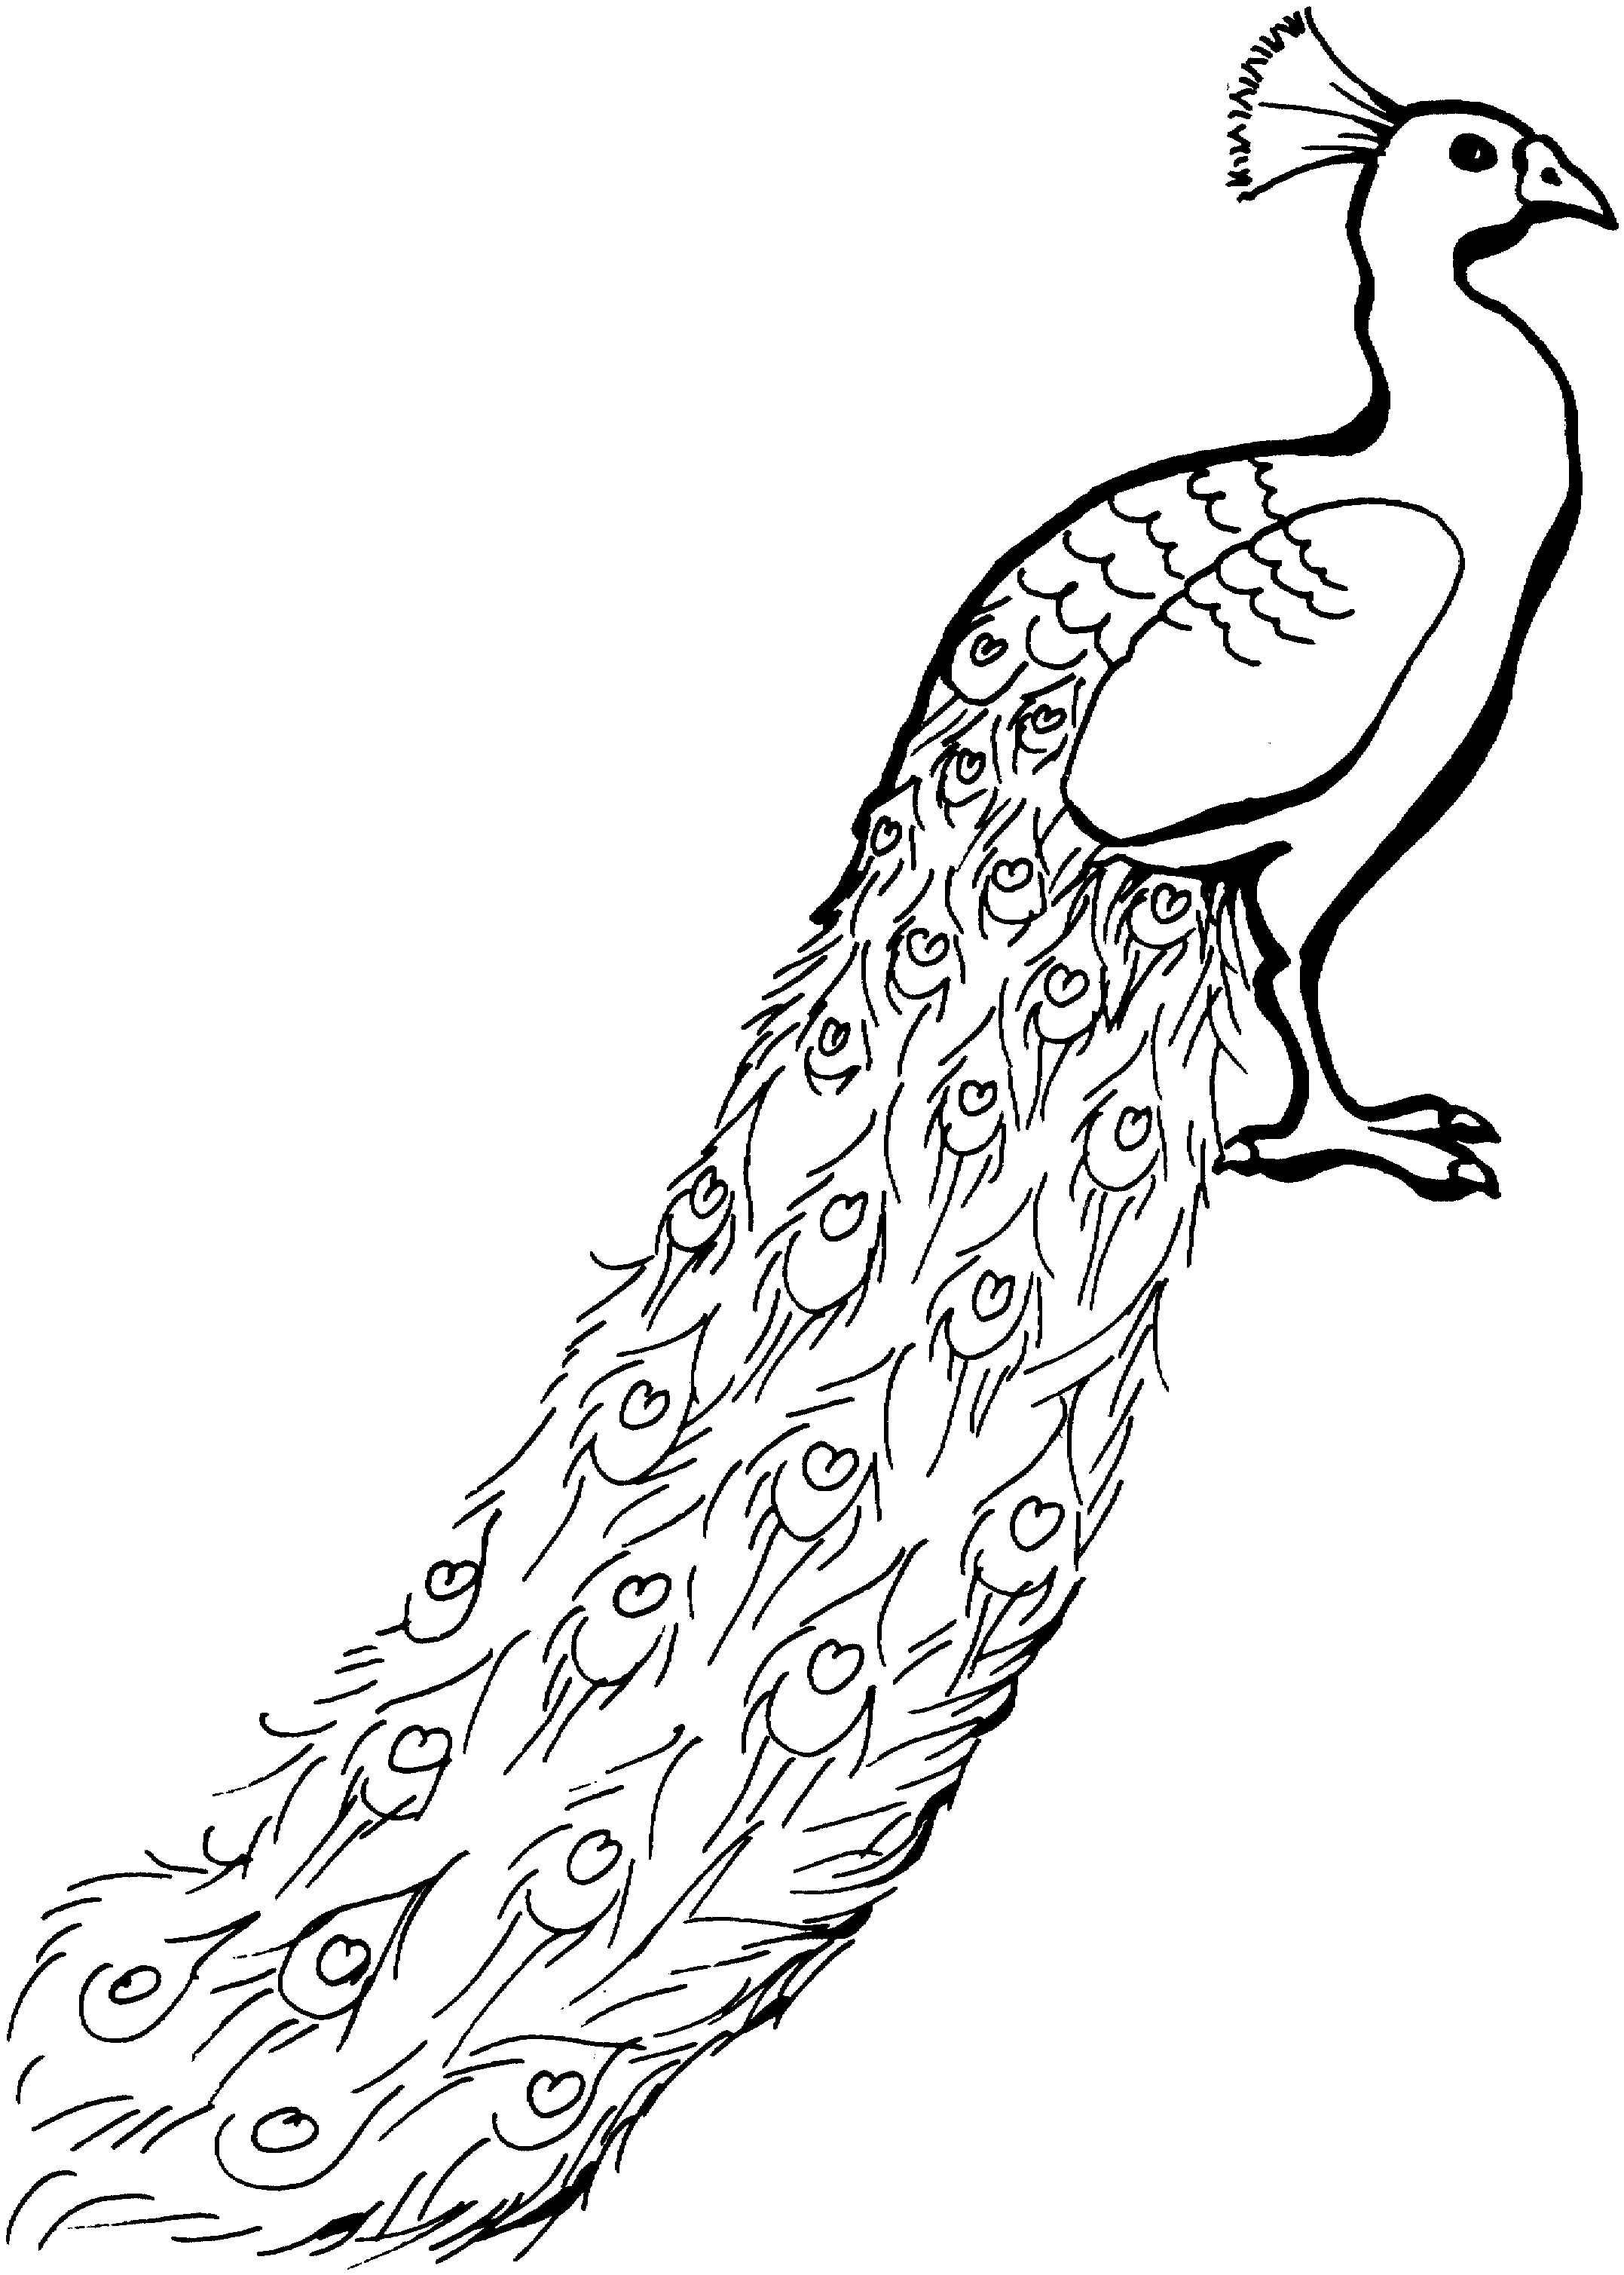 2155x3018 Coloring Pages Animals Coloring Page Adults Peacock Zentangle